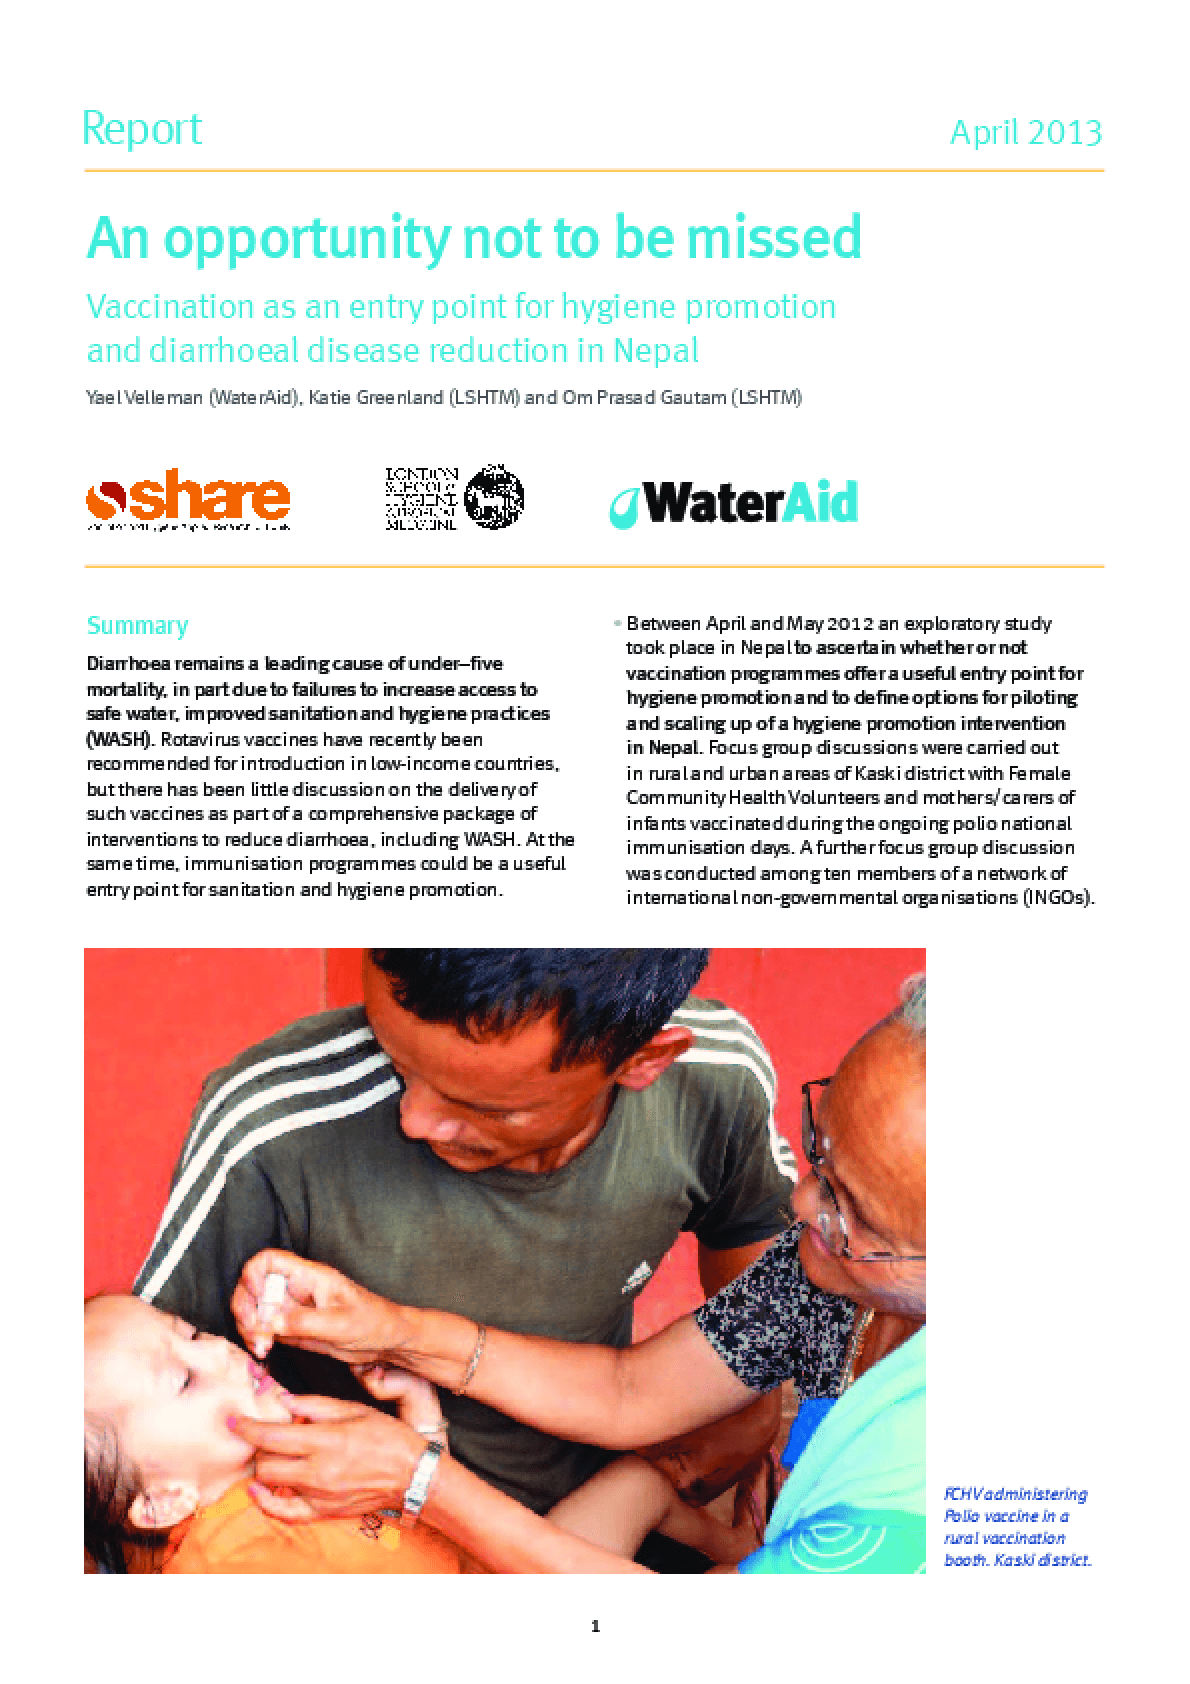 An Opportunity Not To Be Missed: Vaccination as an Entry Point for Hygiene Promotion and Diarrhoeal Disease Reduction in Nepal